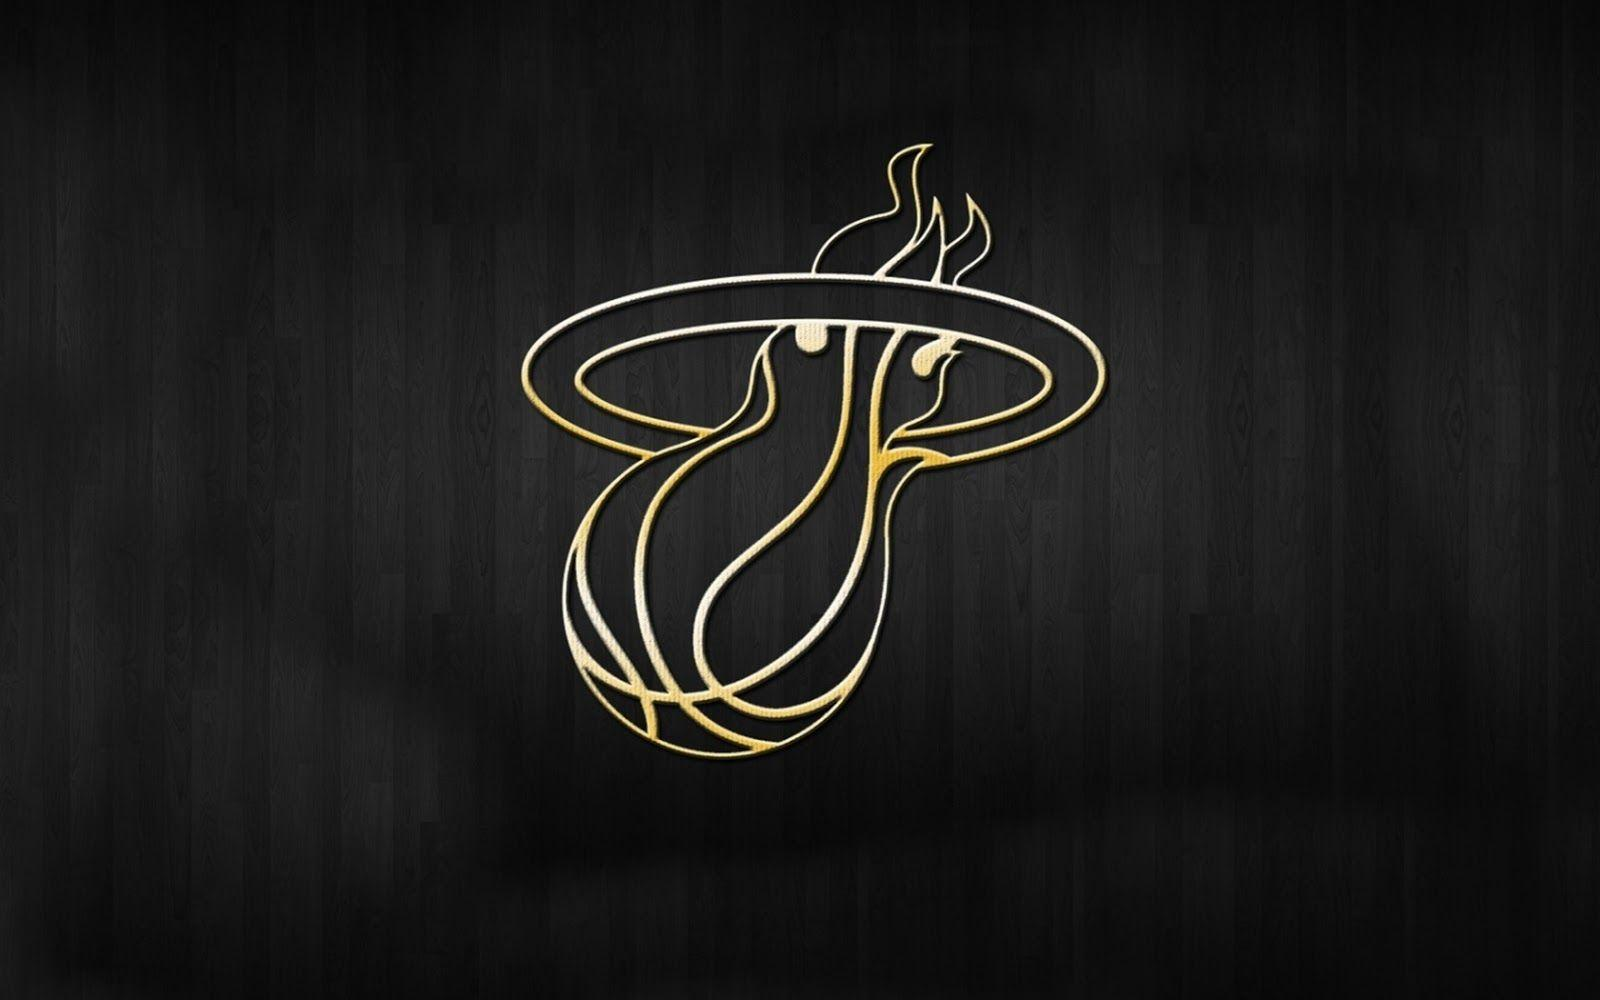 95] Miami Heat Iphone Wallpaper 2016 on WallpaperSafari 1600x1000